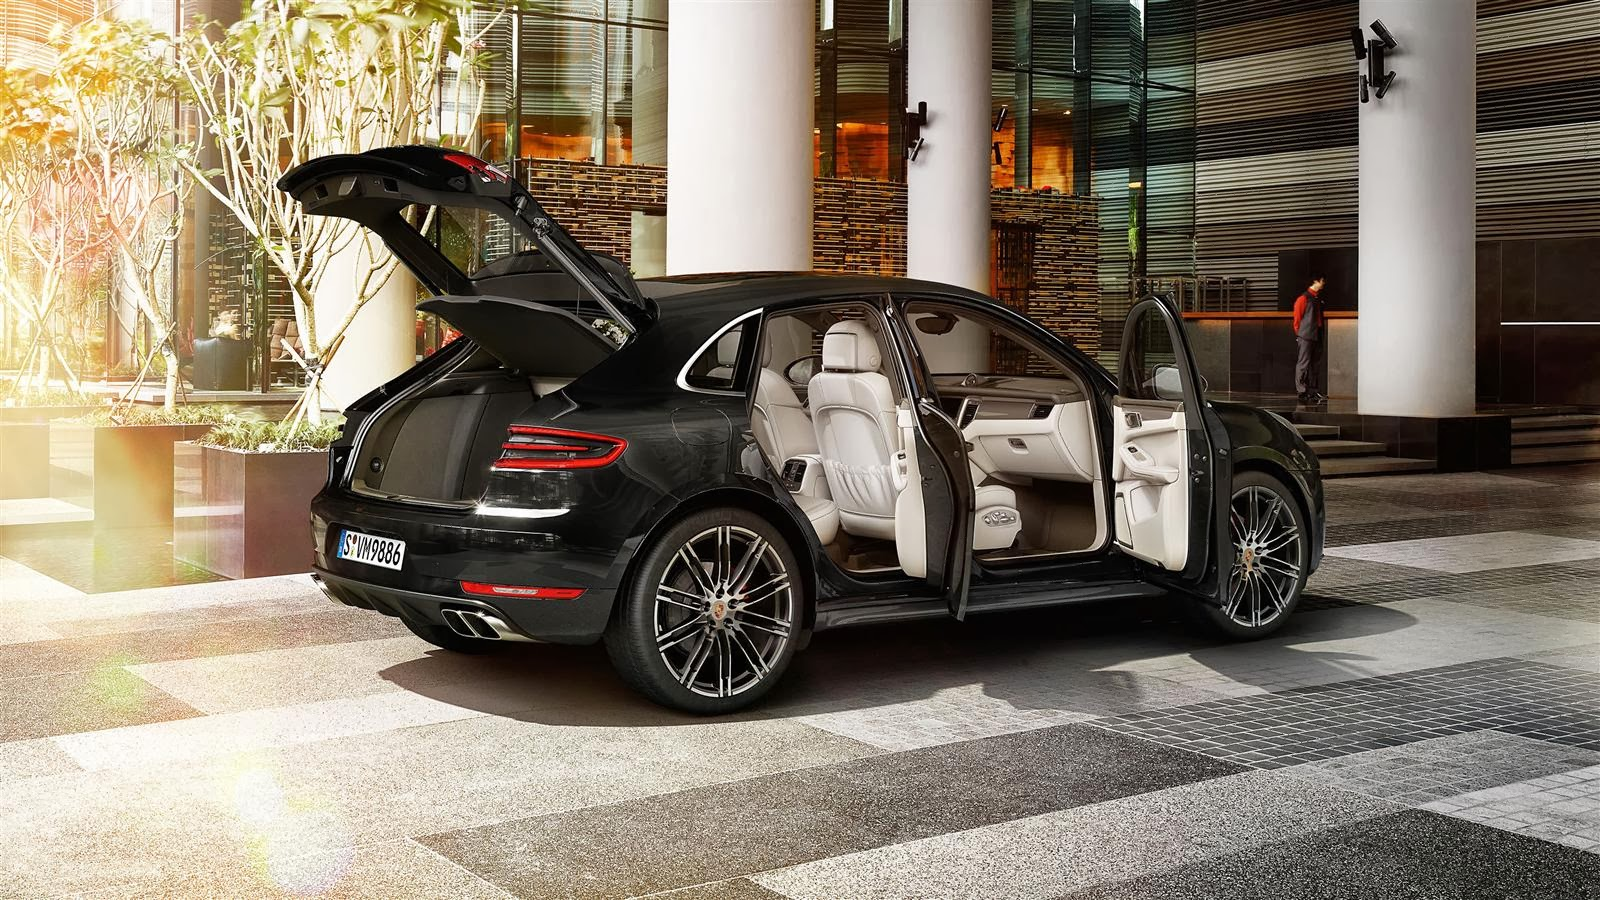 911 turbo pictures videos porsche macan revealed. Black Bedroom Furniture Sets. Home Design Ideas